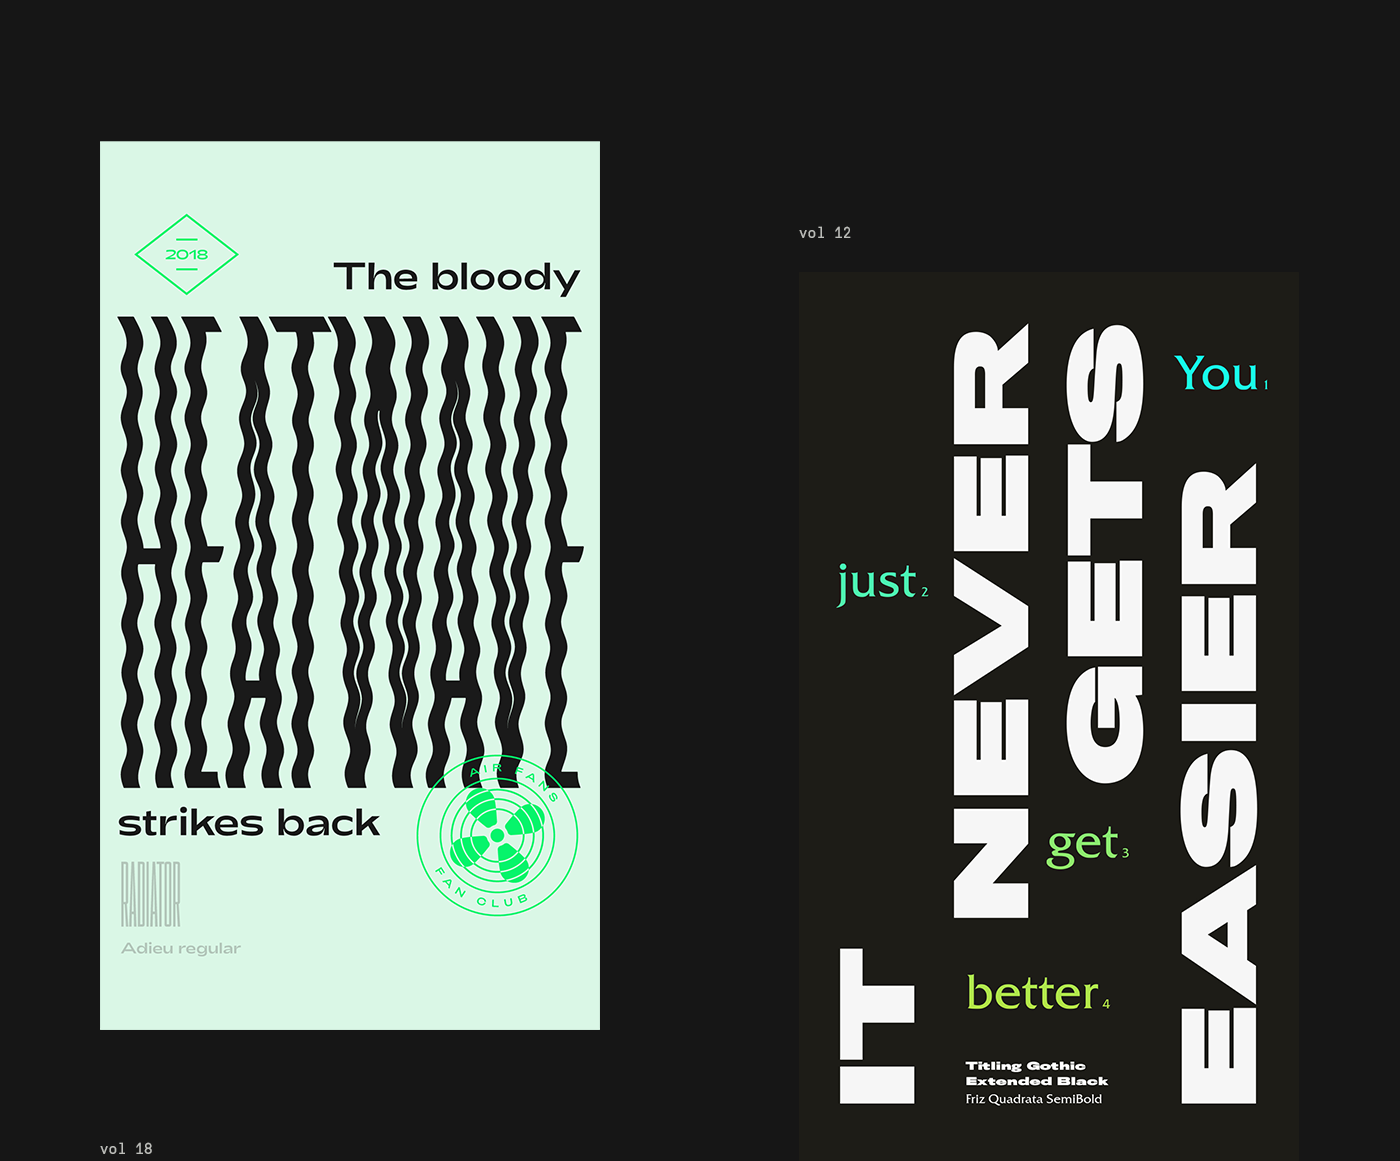 TypoStories: a graphical study on typefaces and font pairings